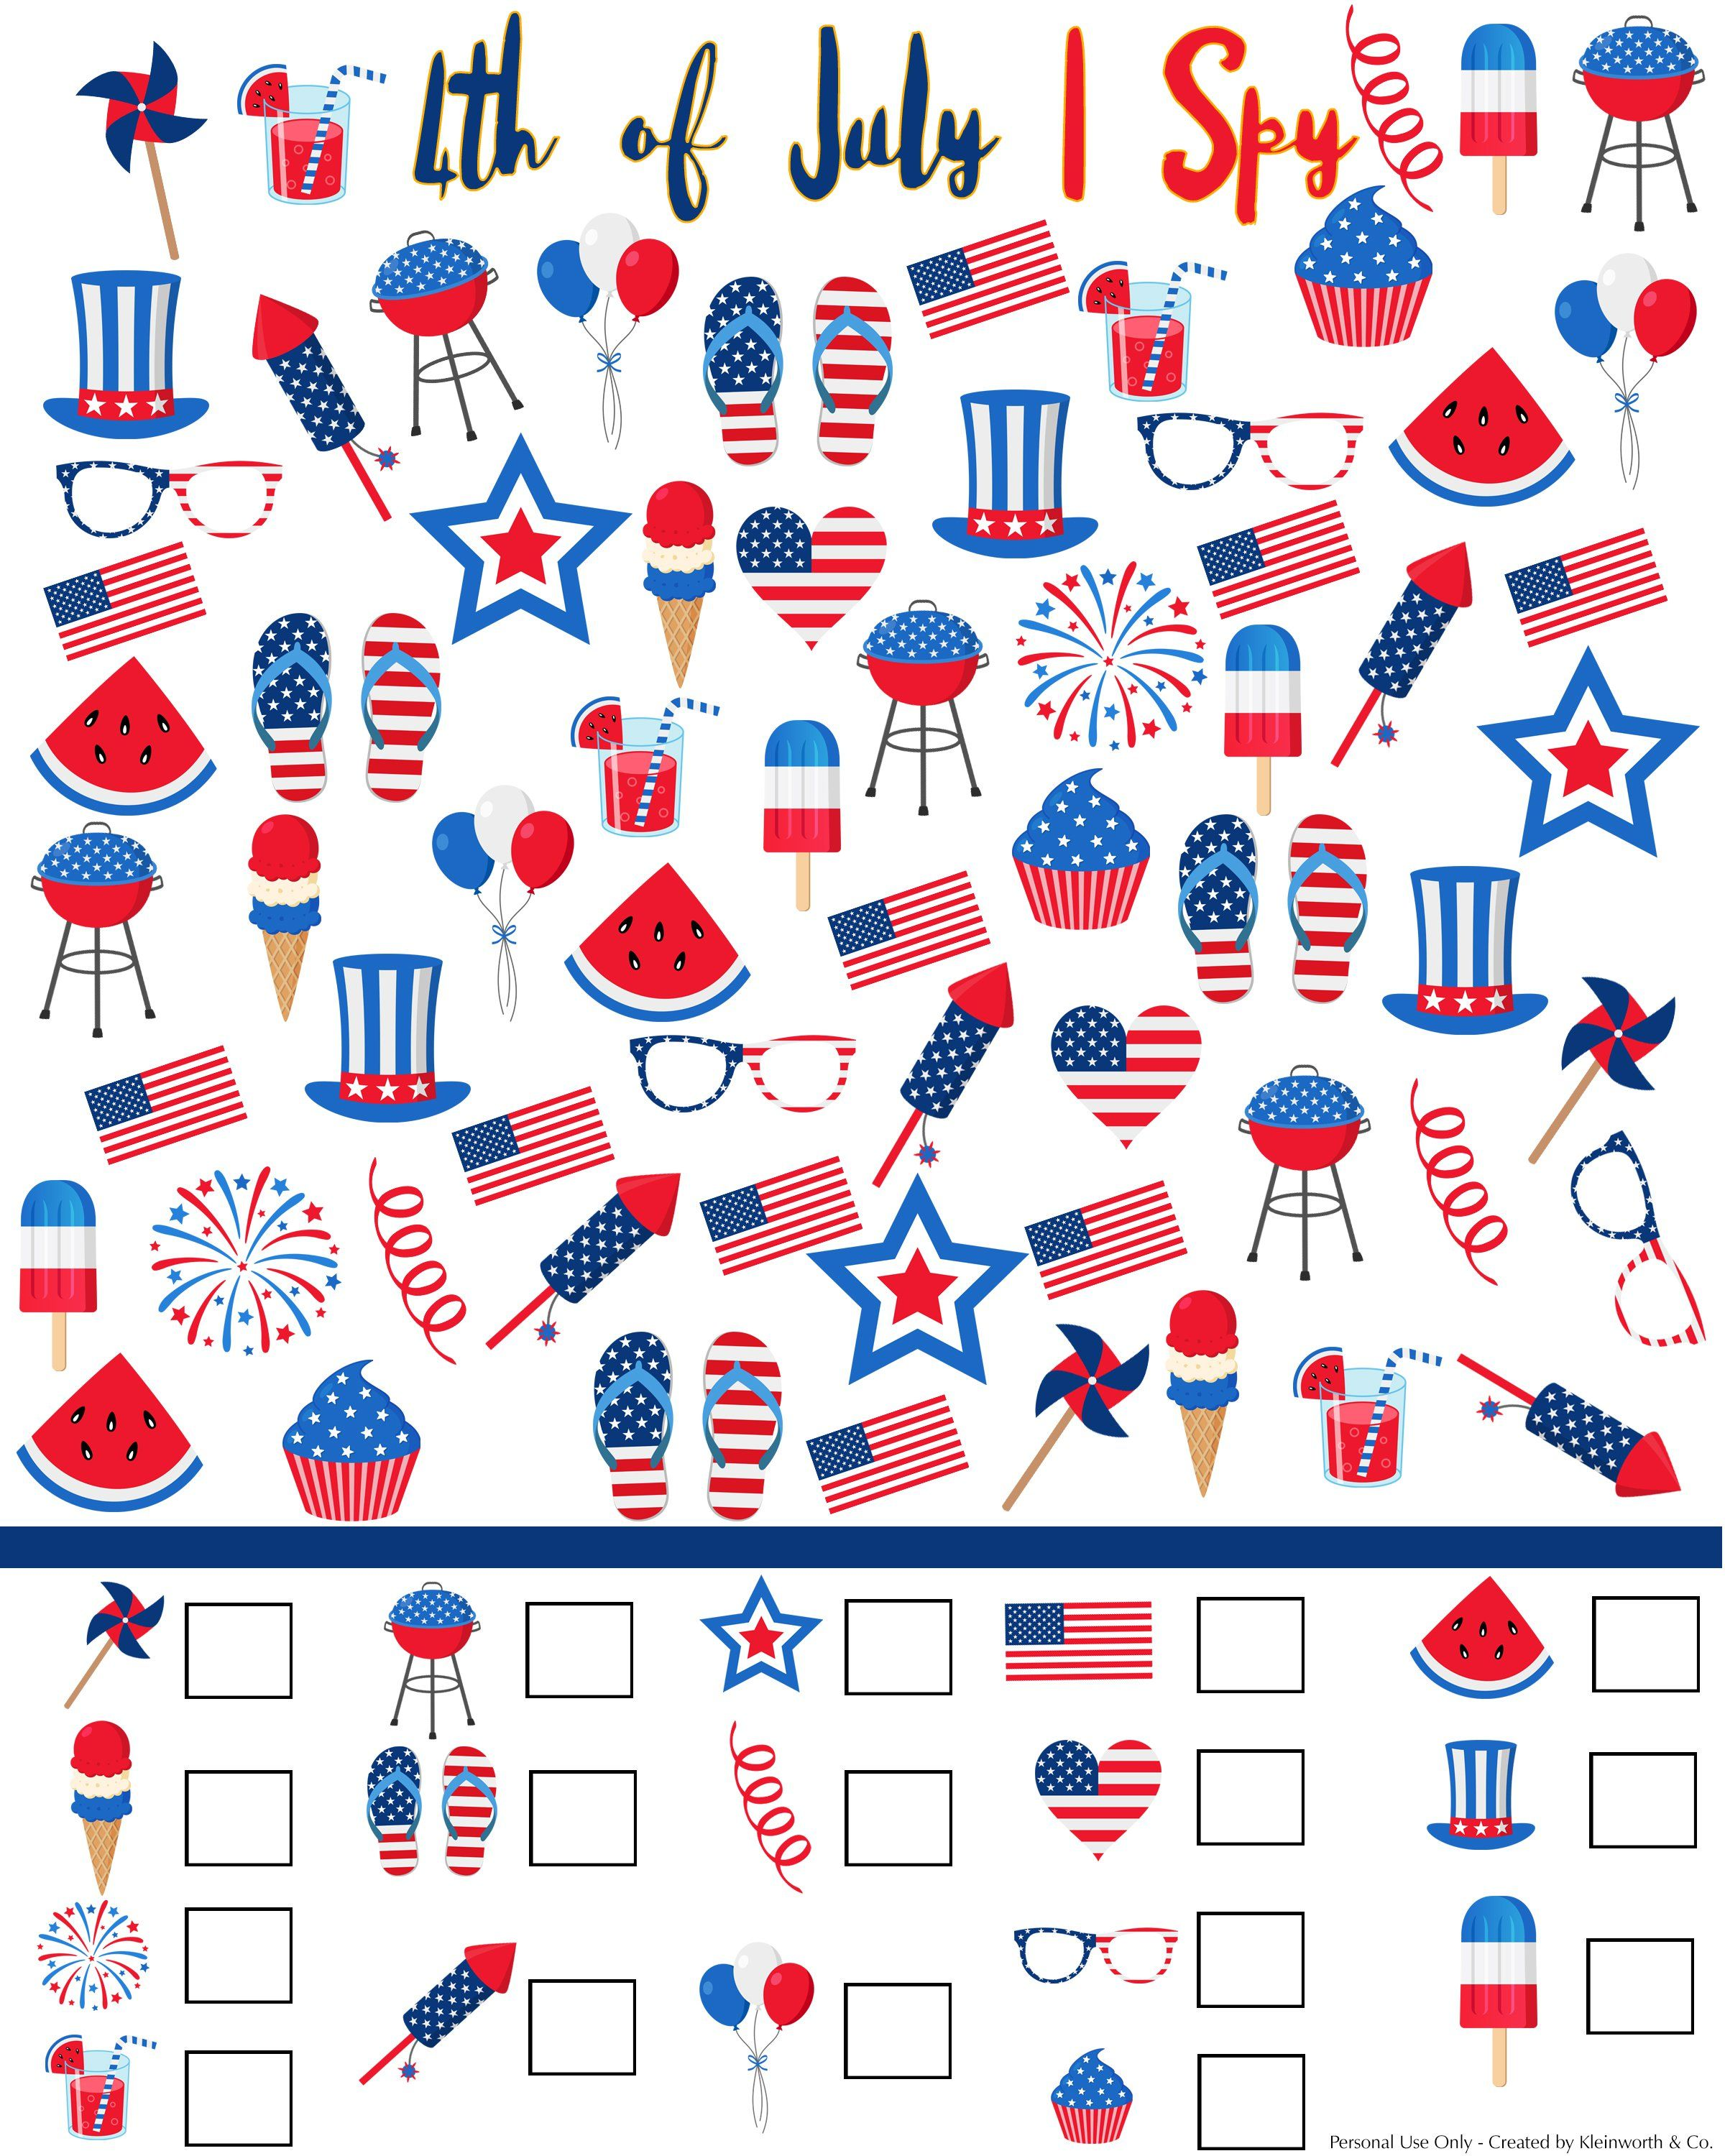 4th Of July I Spy Printable Free Printable To Keep The Kids Busy While They W Fourth Of July Crafts For Kids Printables Free Kids Holiday Activities For Kids [ 3000 x 2400 Pixel ]